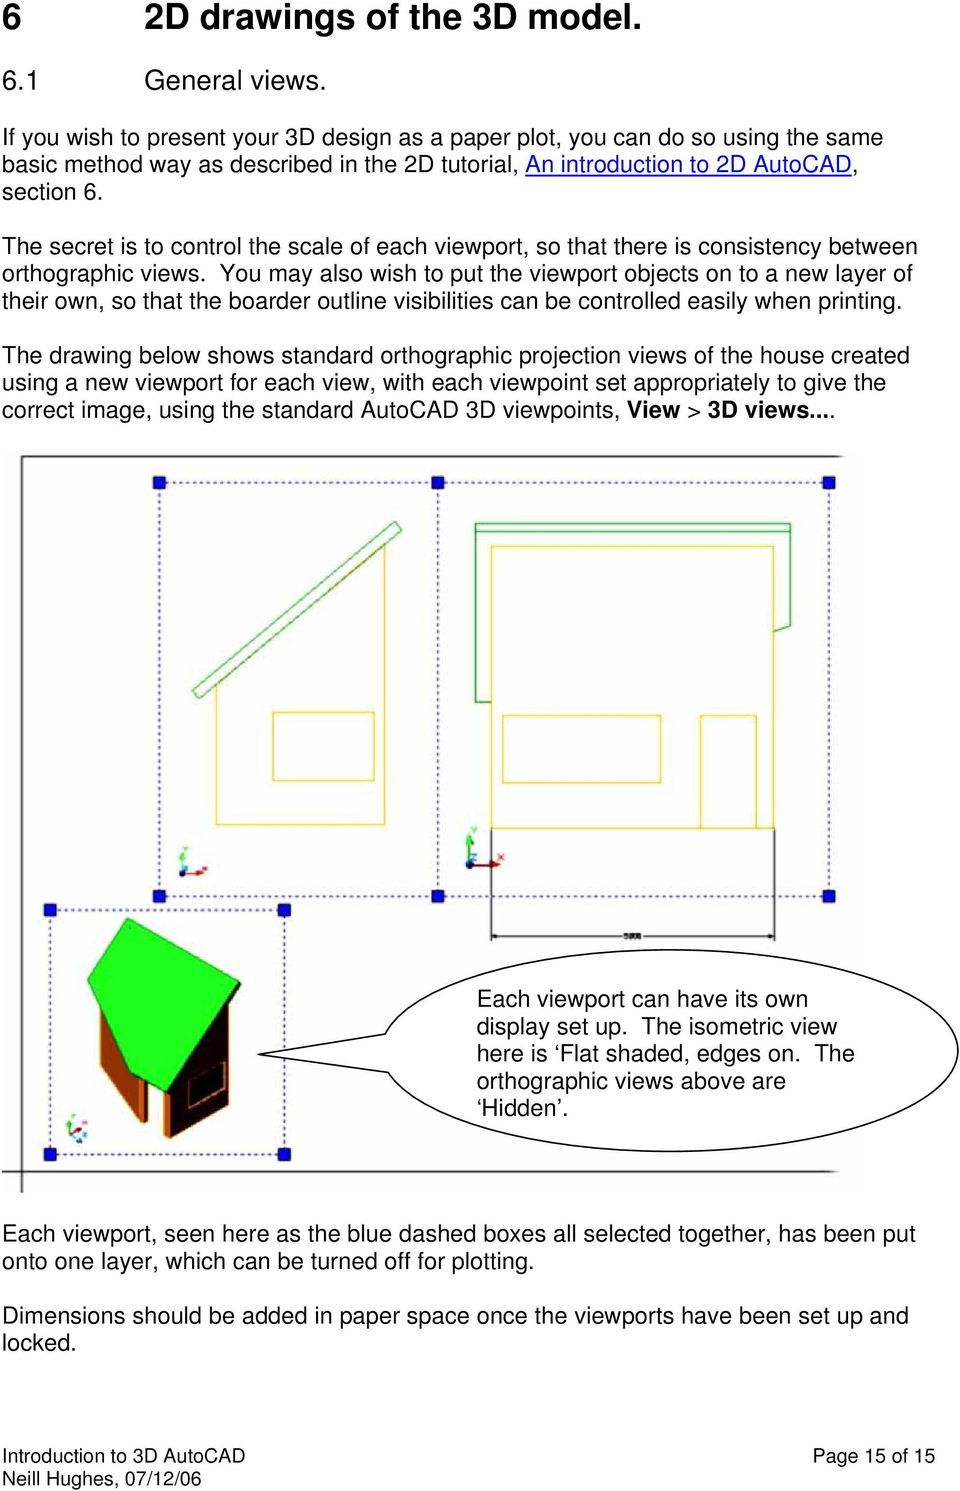 An introduction to 3D draughting & solid modelling using